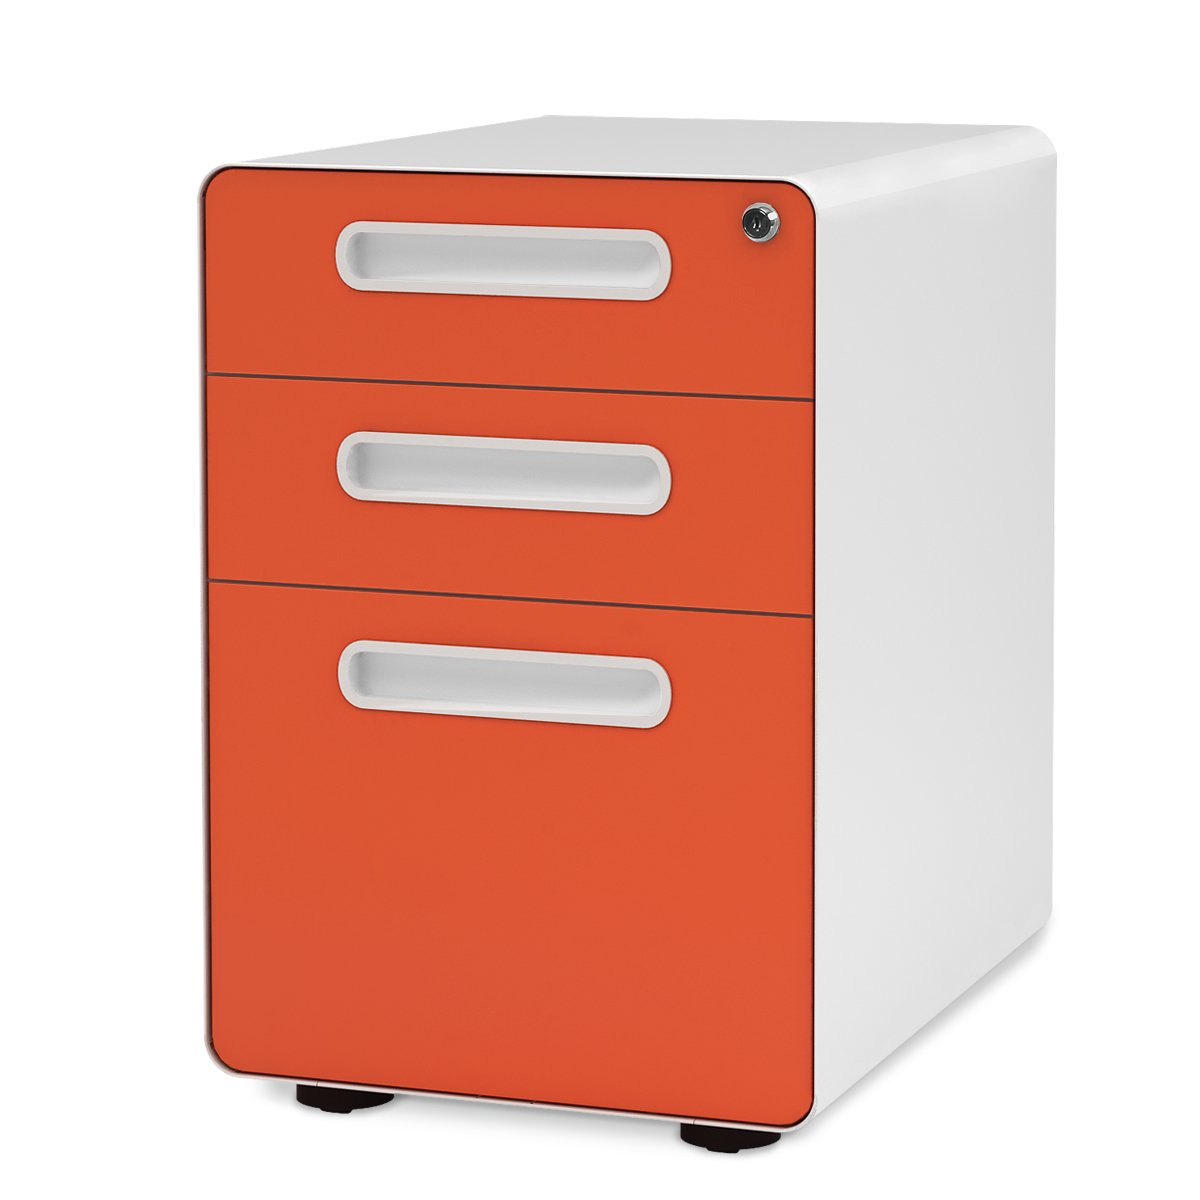 Forum on this topic: Poppin Filing Cabinet Giveaway, poppin-filing-cabinet-giveaway/